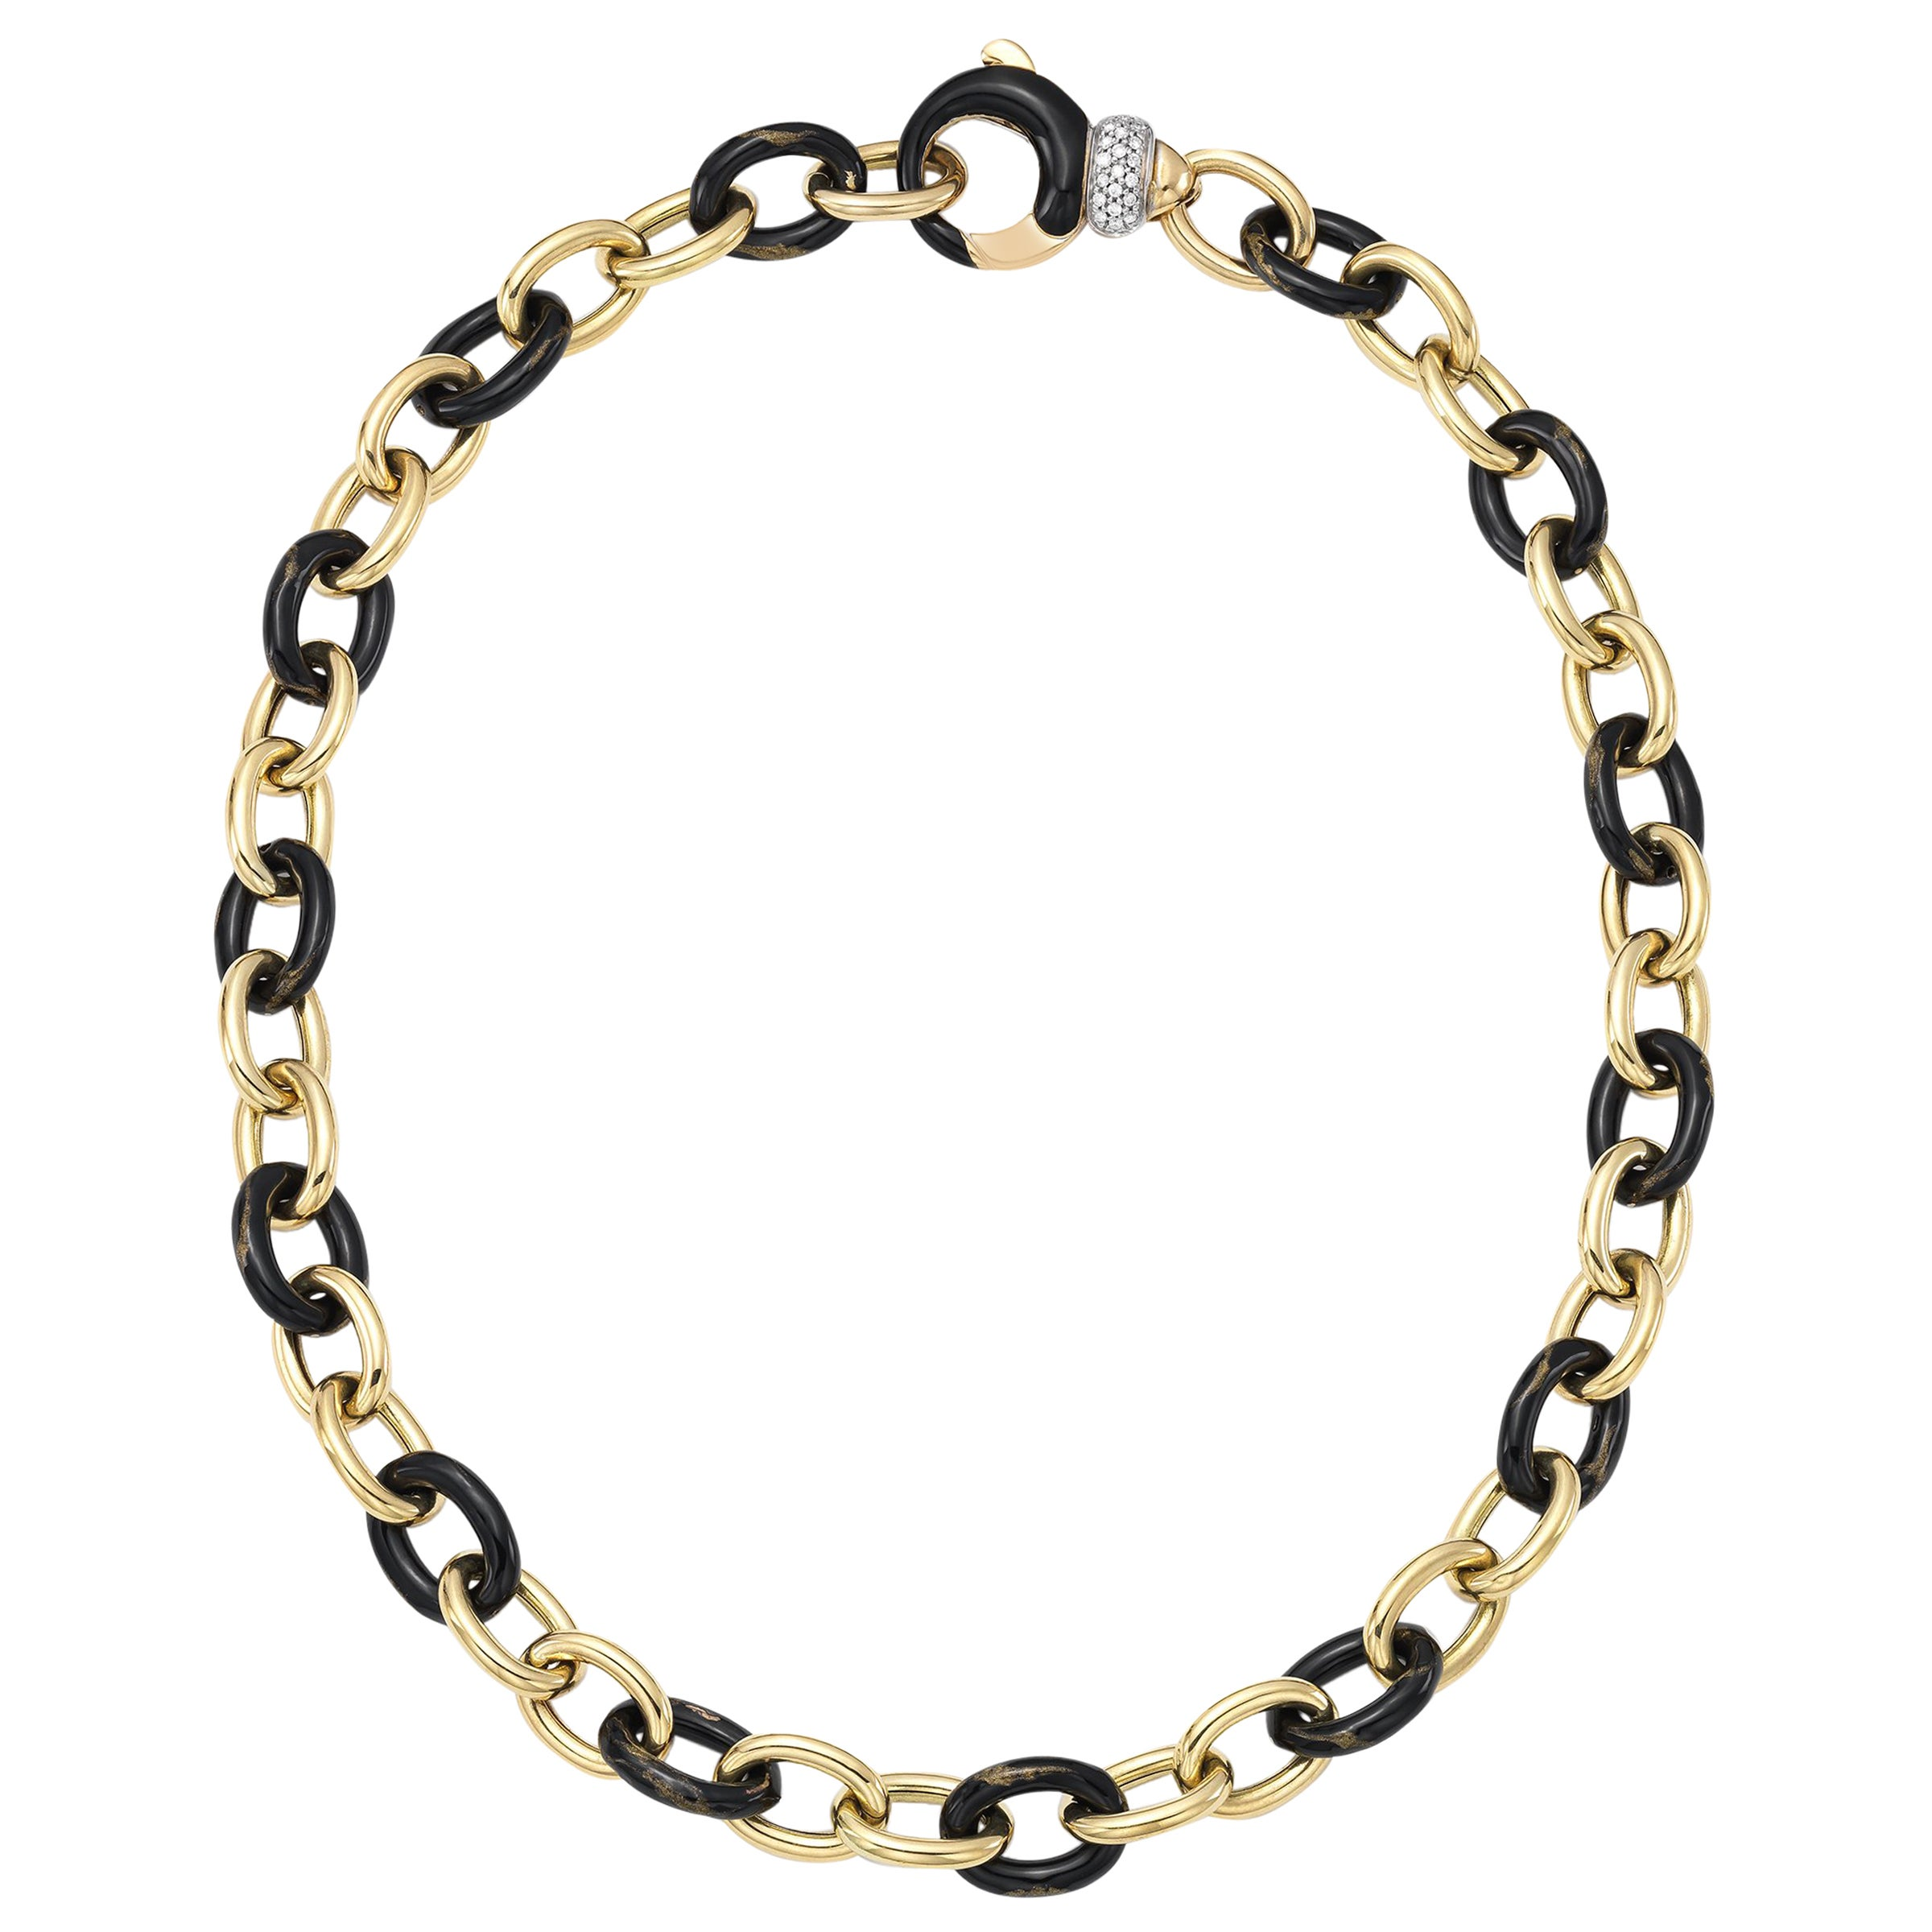 Vintage Soho Black and Yellow Foliage Link Necklace with Diamond Clasp at  1stdibs